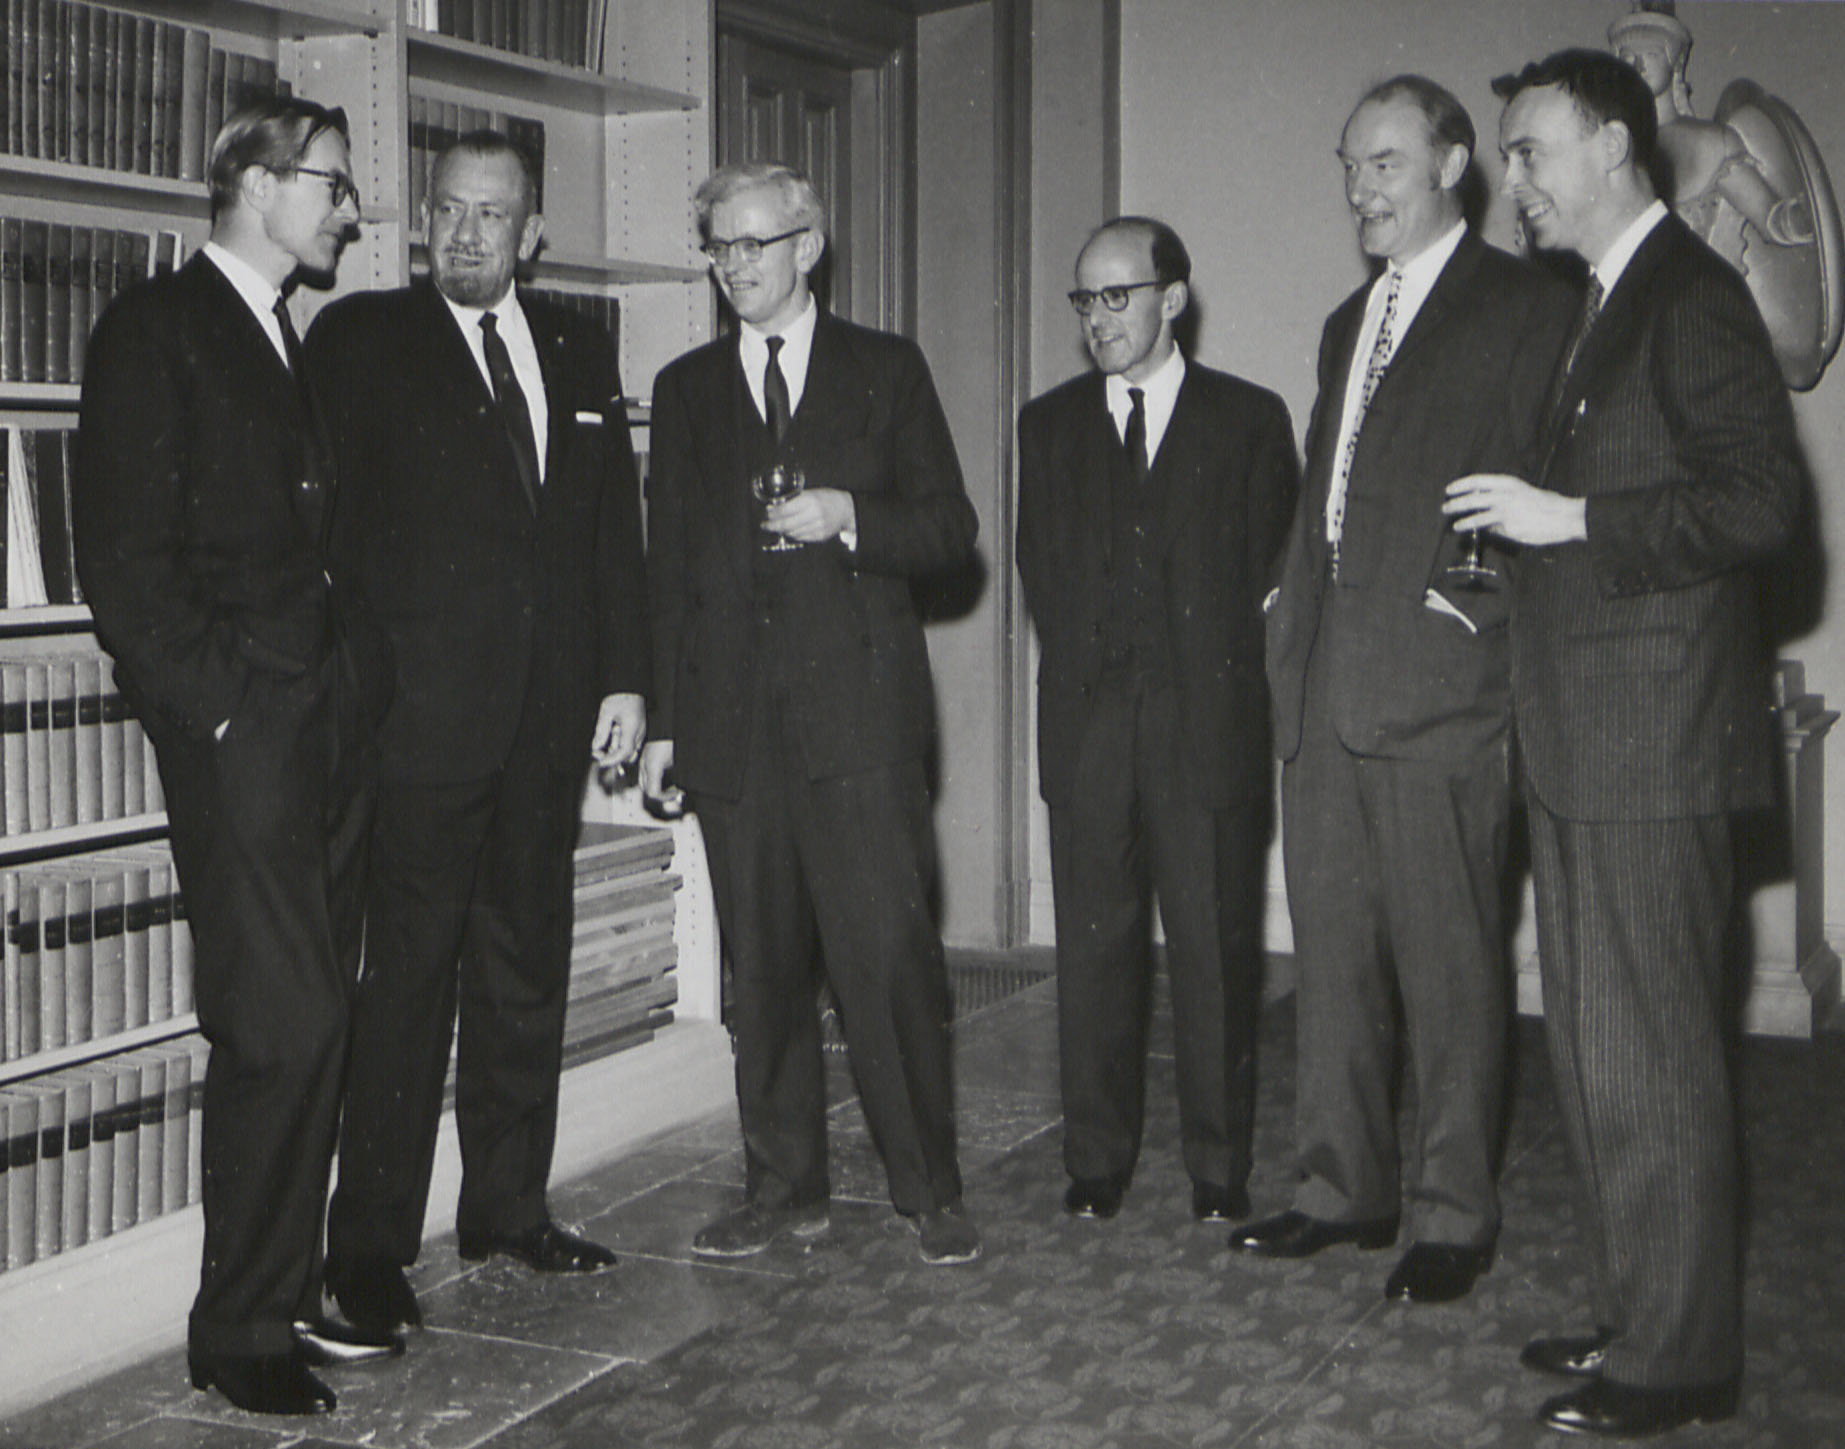 Nobel Prize winners of 1962 (Maurice Wilkins, John Steinbeck, John Kendrew, Max Perutz, Francis Crick and Jim Watson)